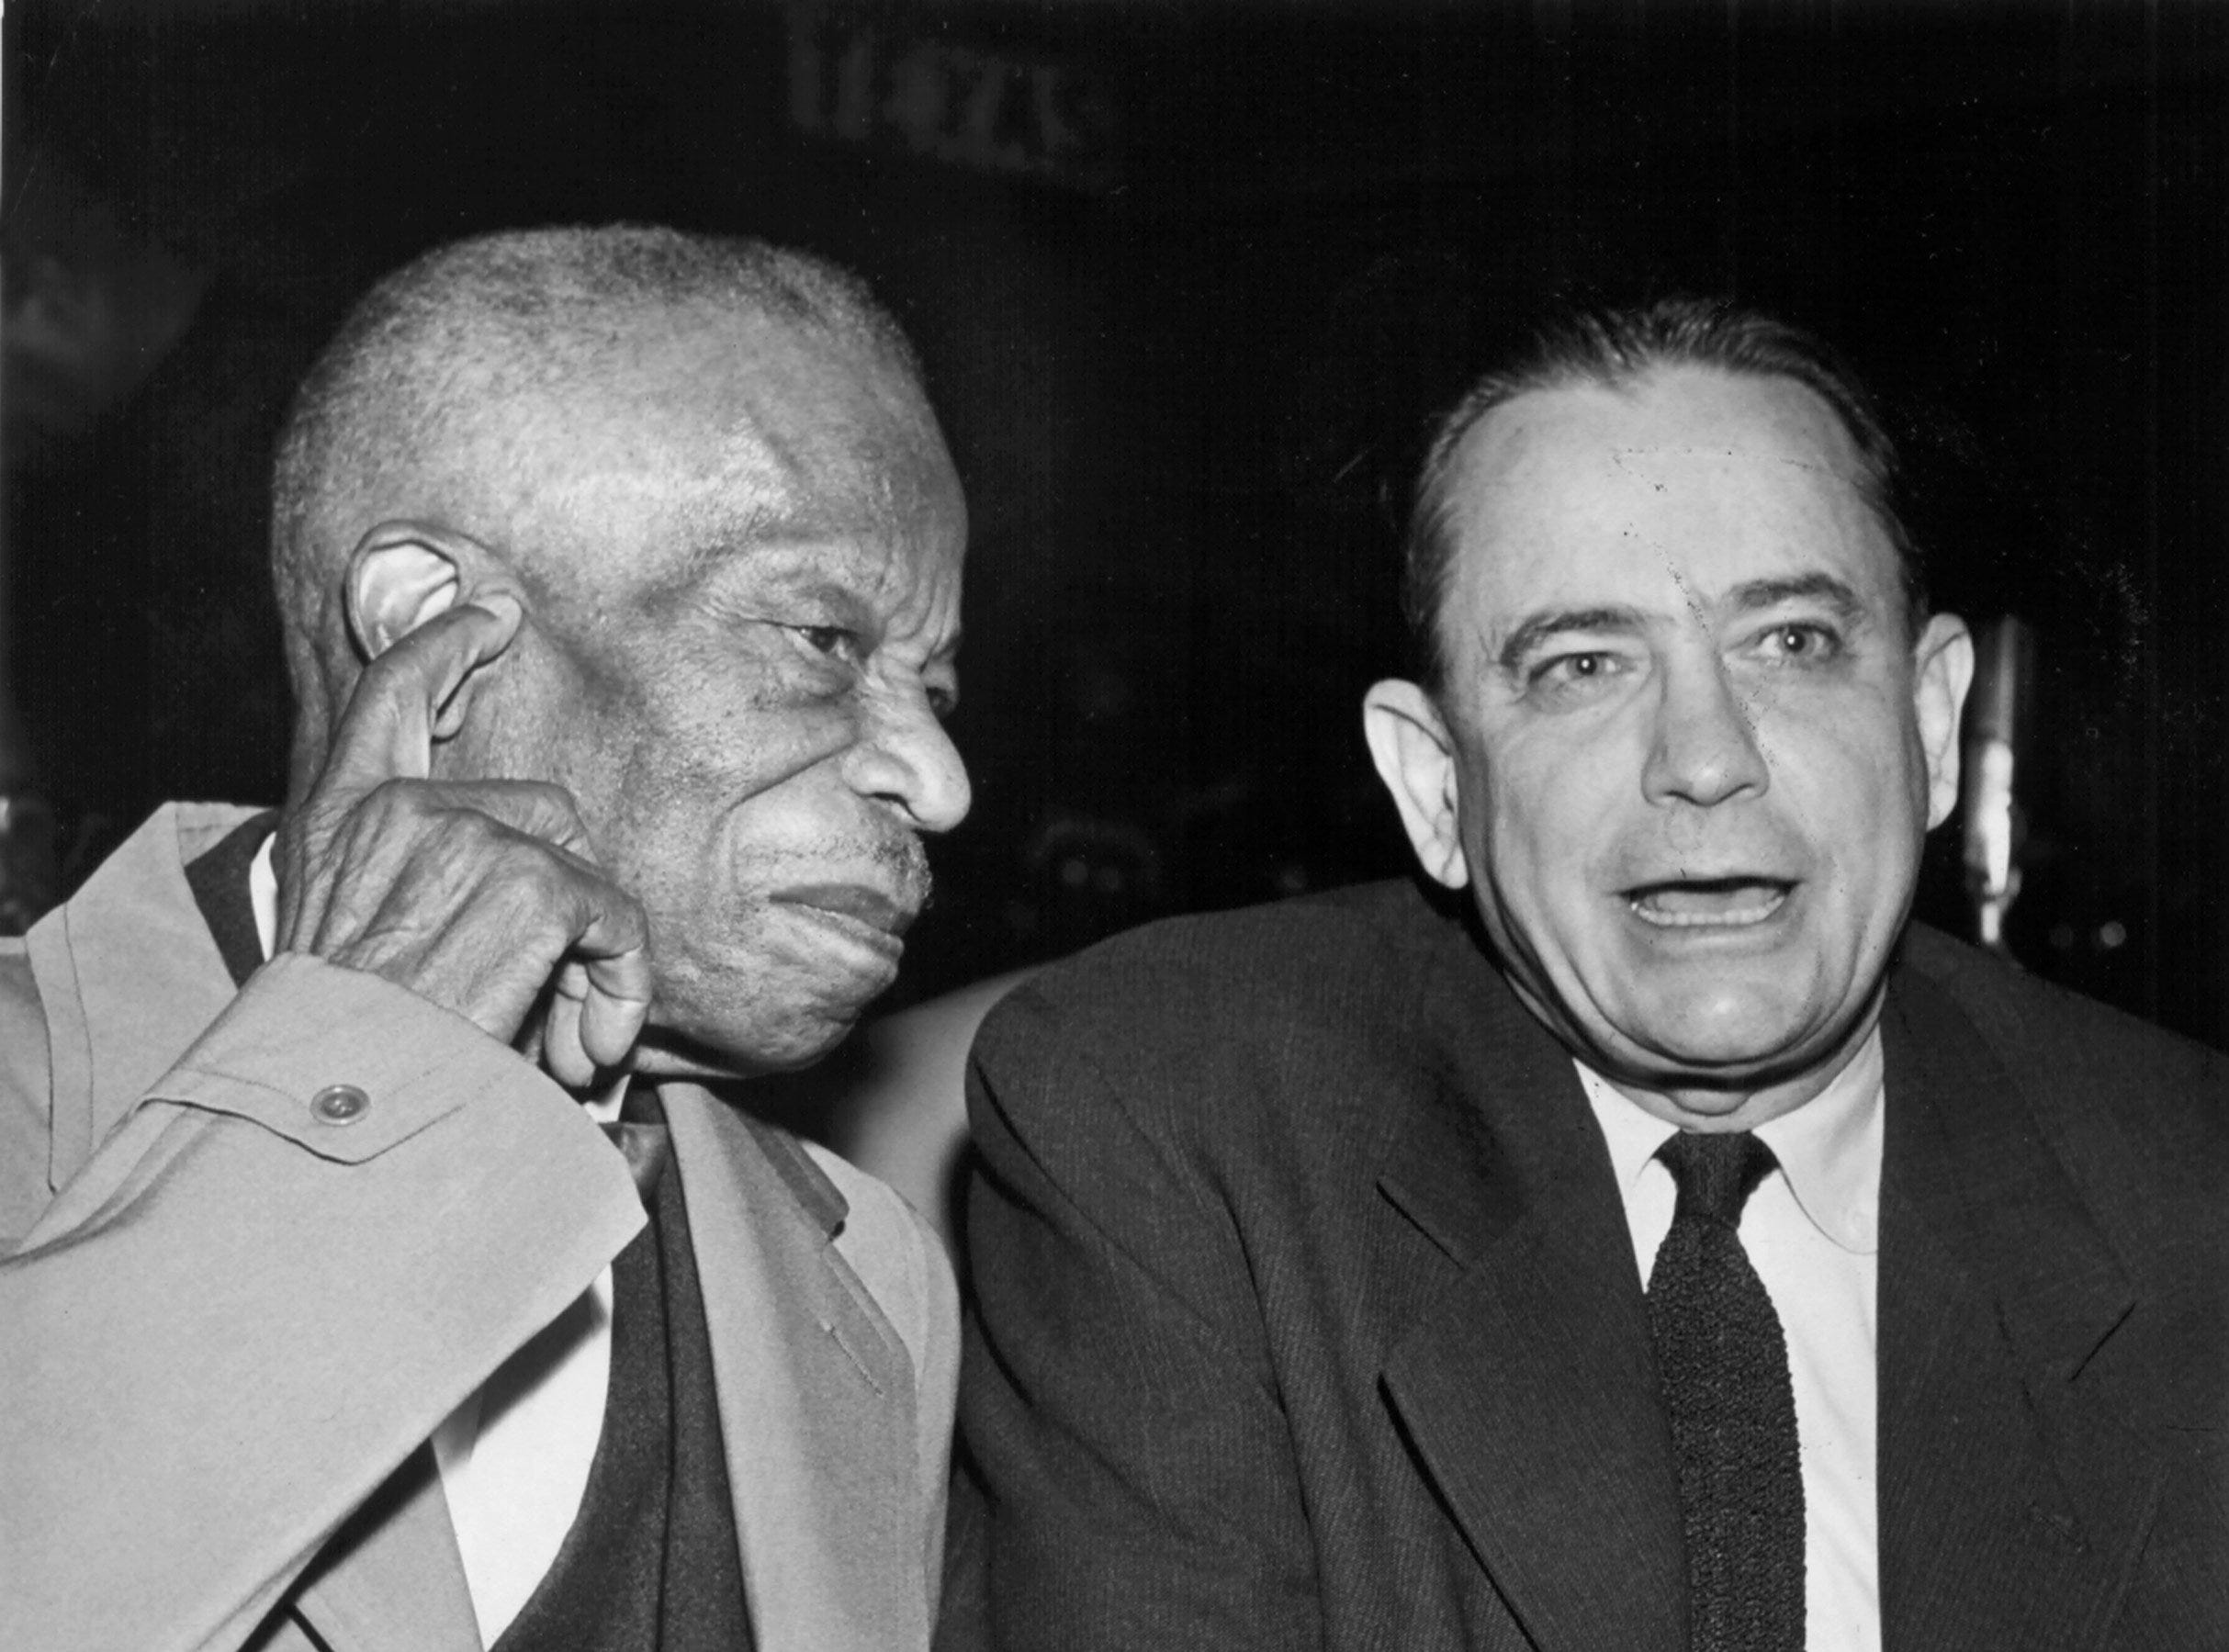 Church of God In Christ Senior Bishop C.H. Mason Sr. (Left) and Mayor Edmund Orgill confer on 3 Dec 1958.